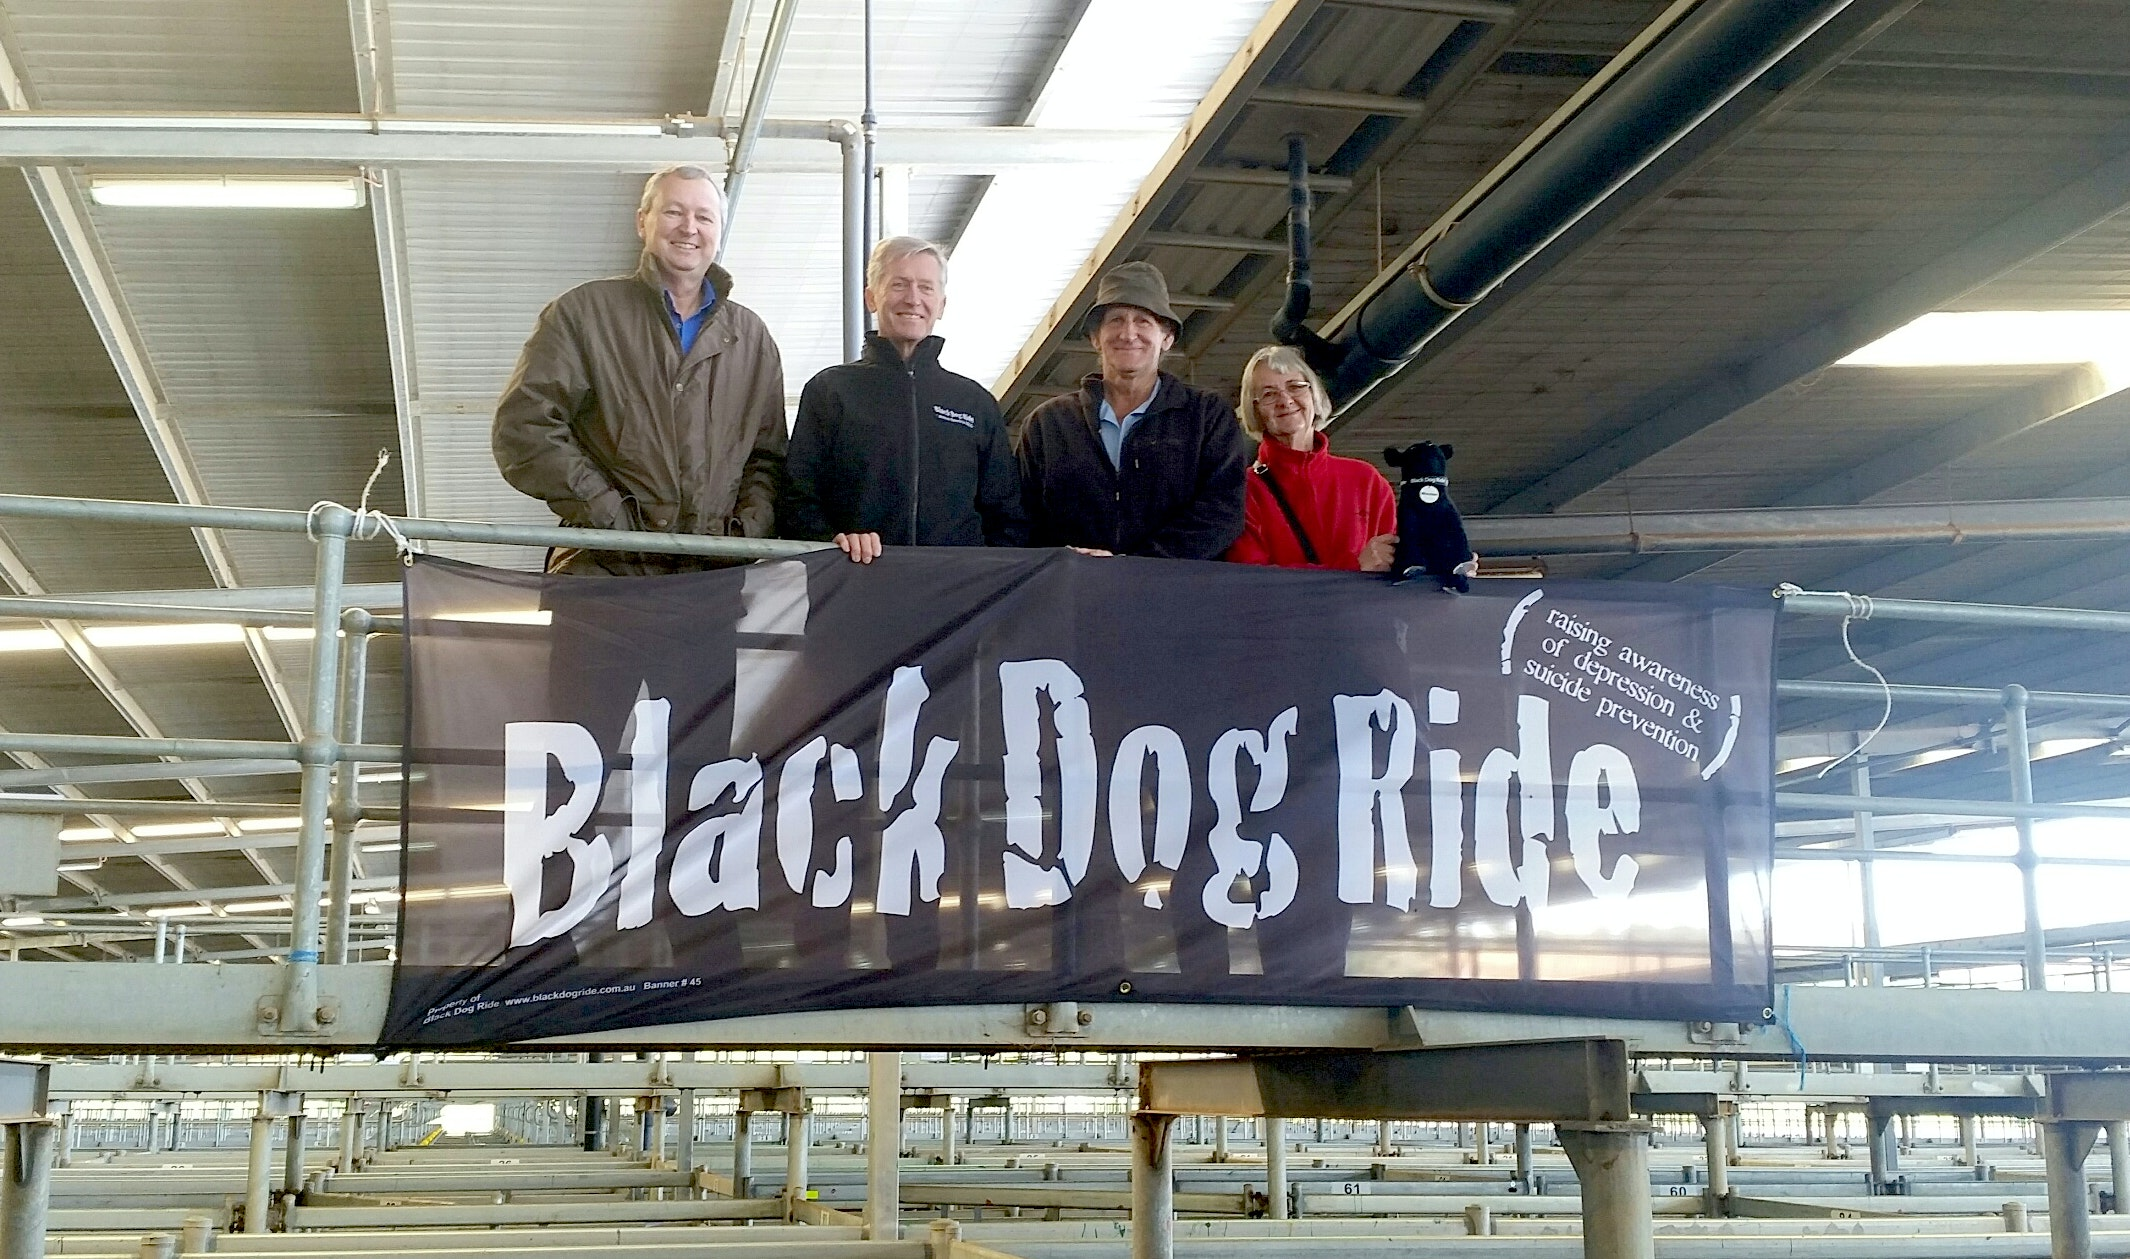 Black Dog Ride Steer Auction for Suicide Prevention in Muchea